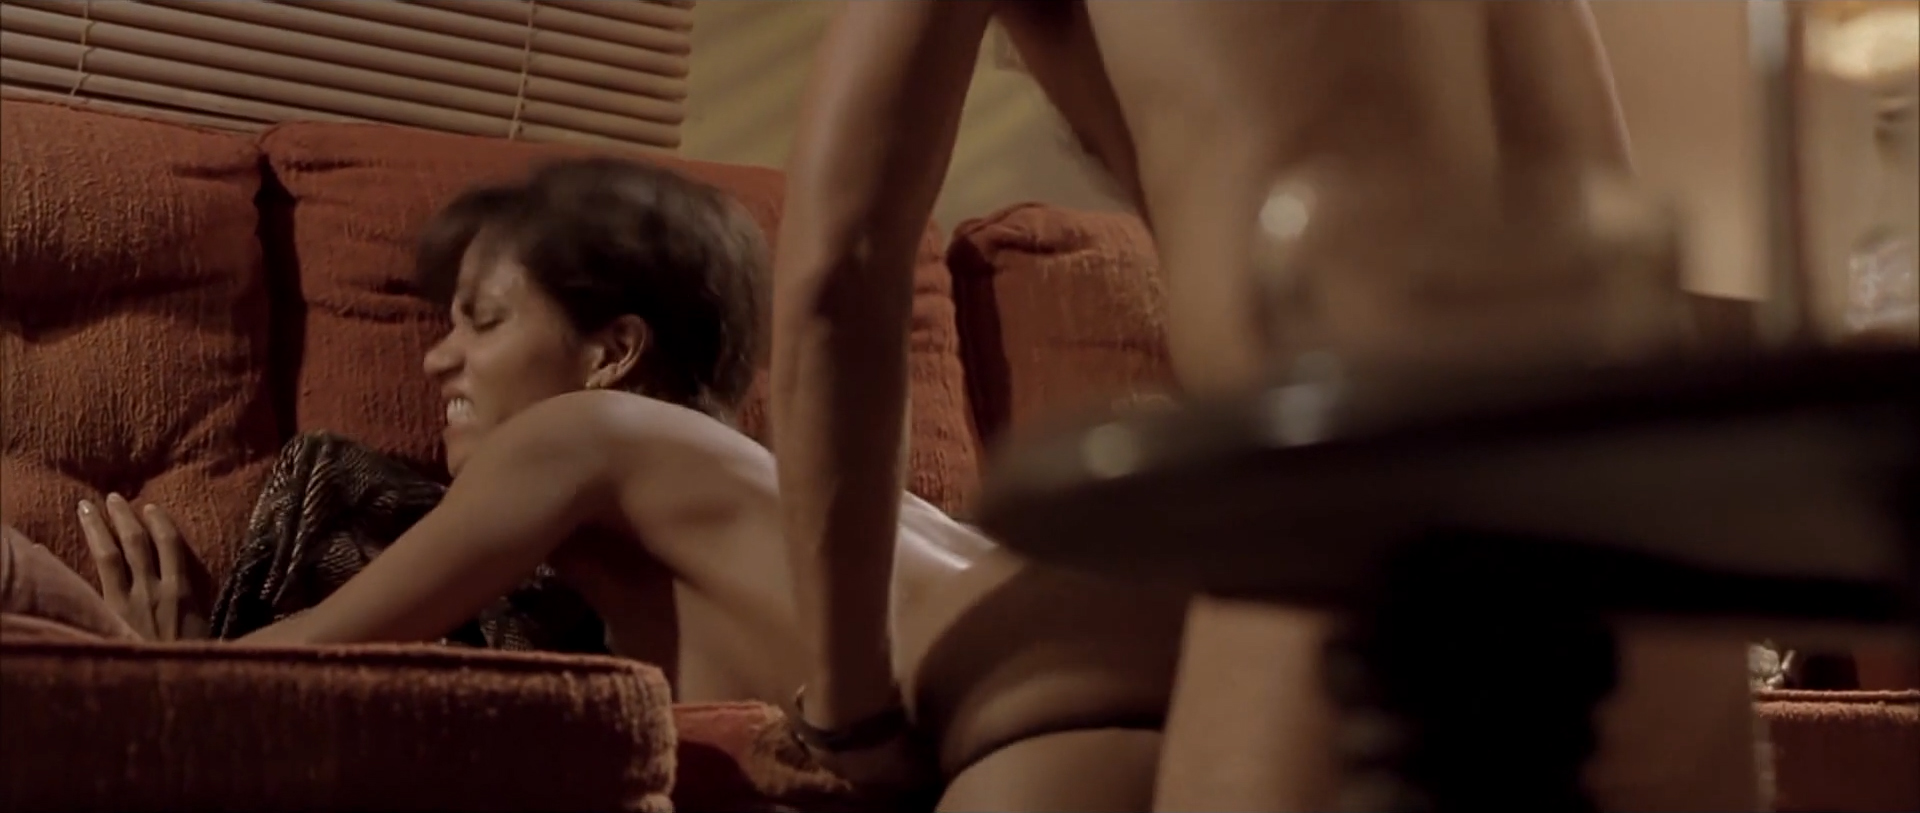 chloe vevrier pussy nude